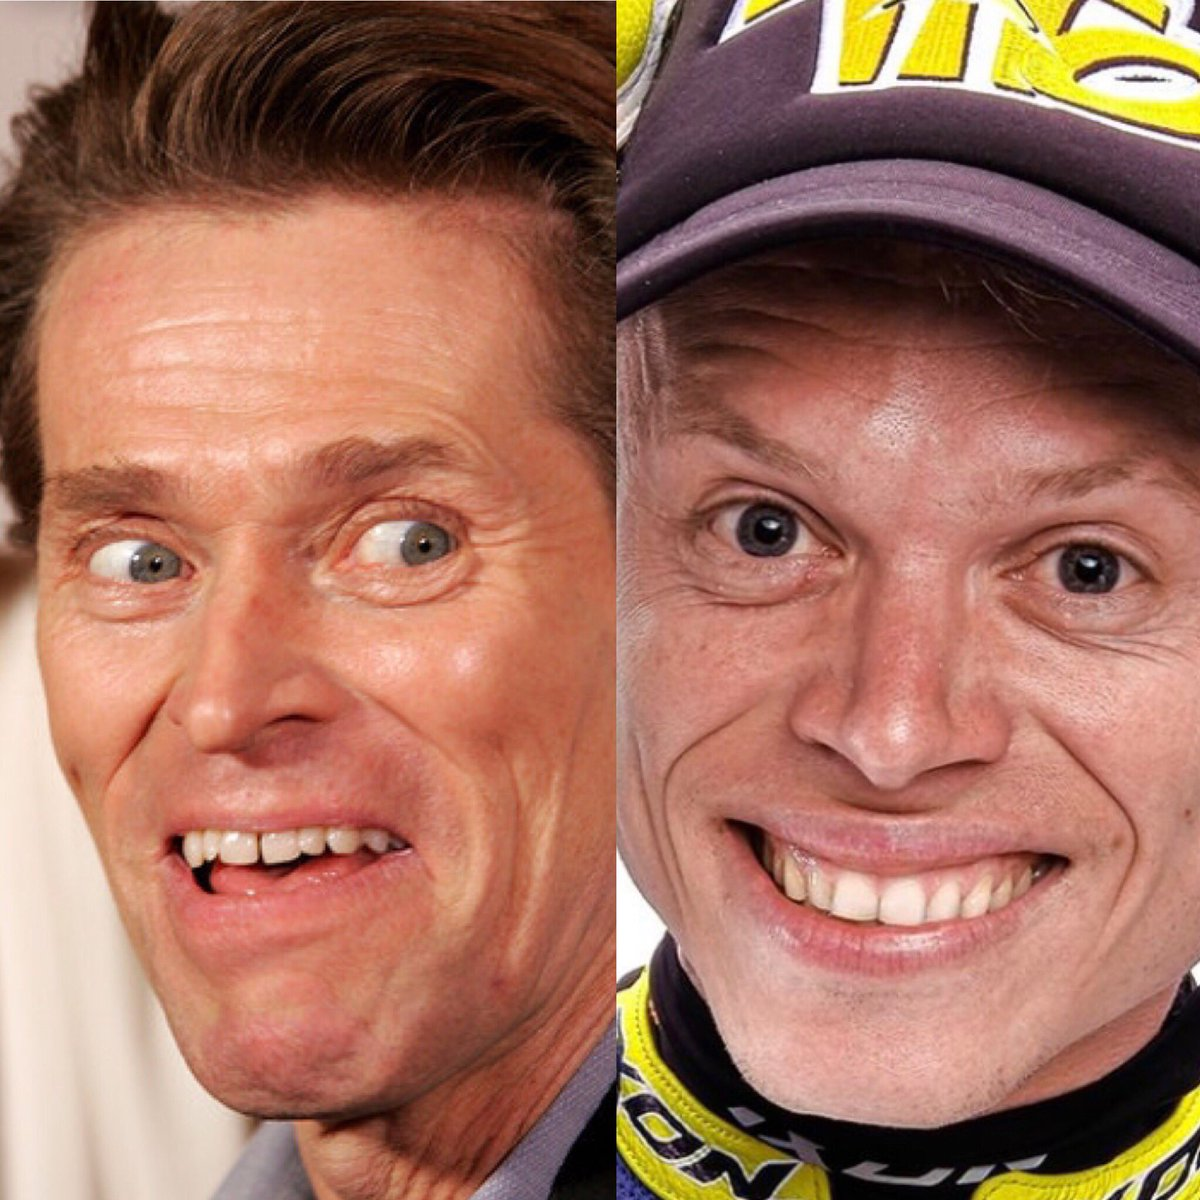 Tito & William DaFoe have never been seen in the same room together. #motogp